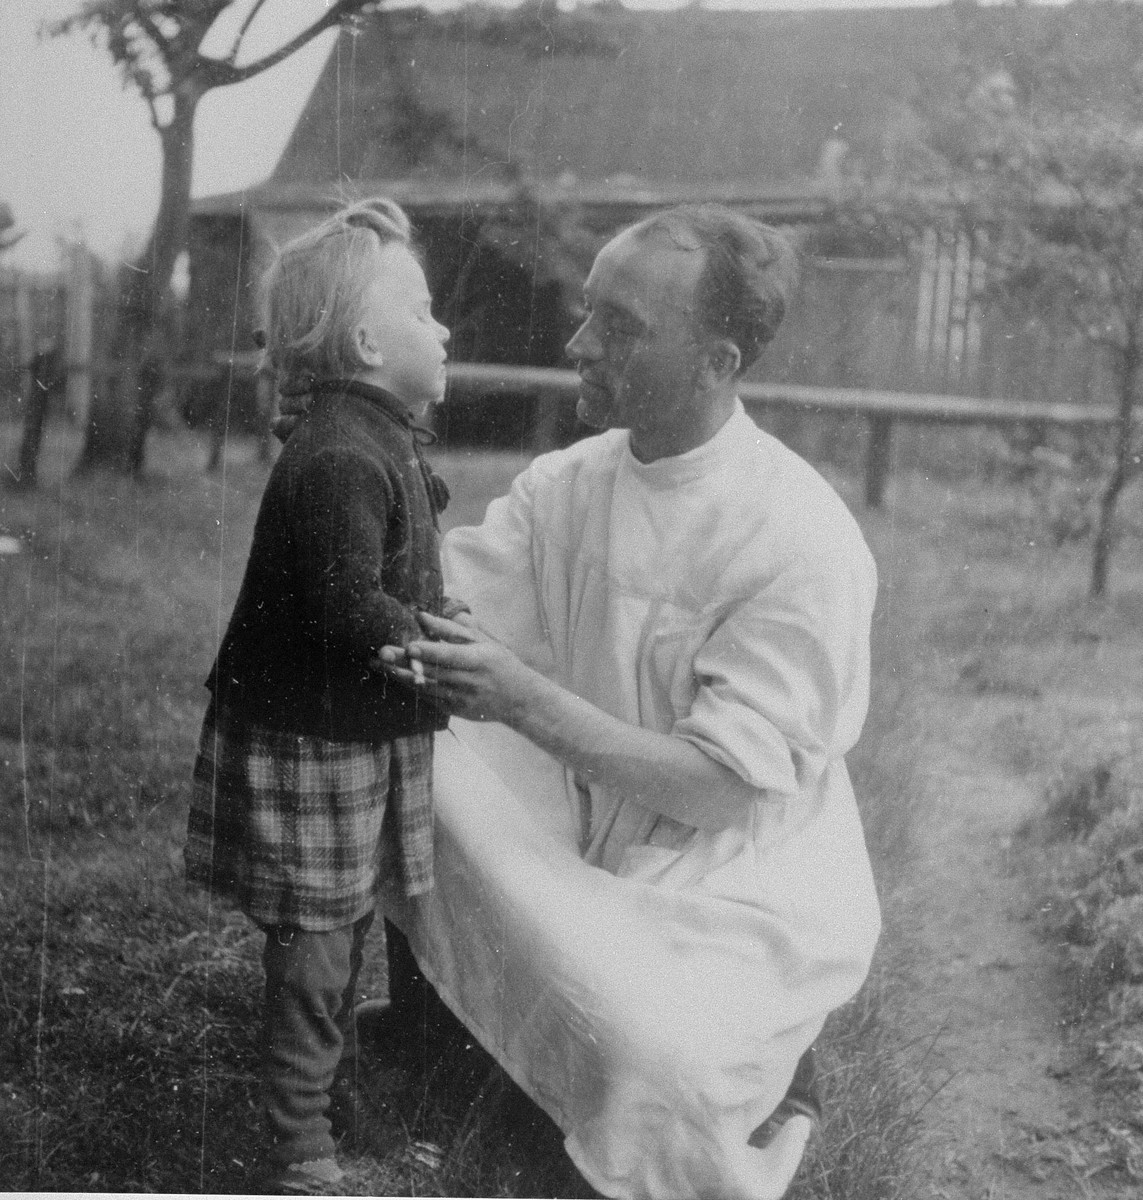 A physician looks at a little girl in theTrzebnia sub-camp of Auschwitz.